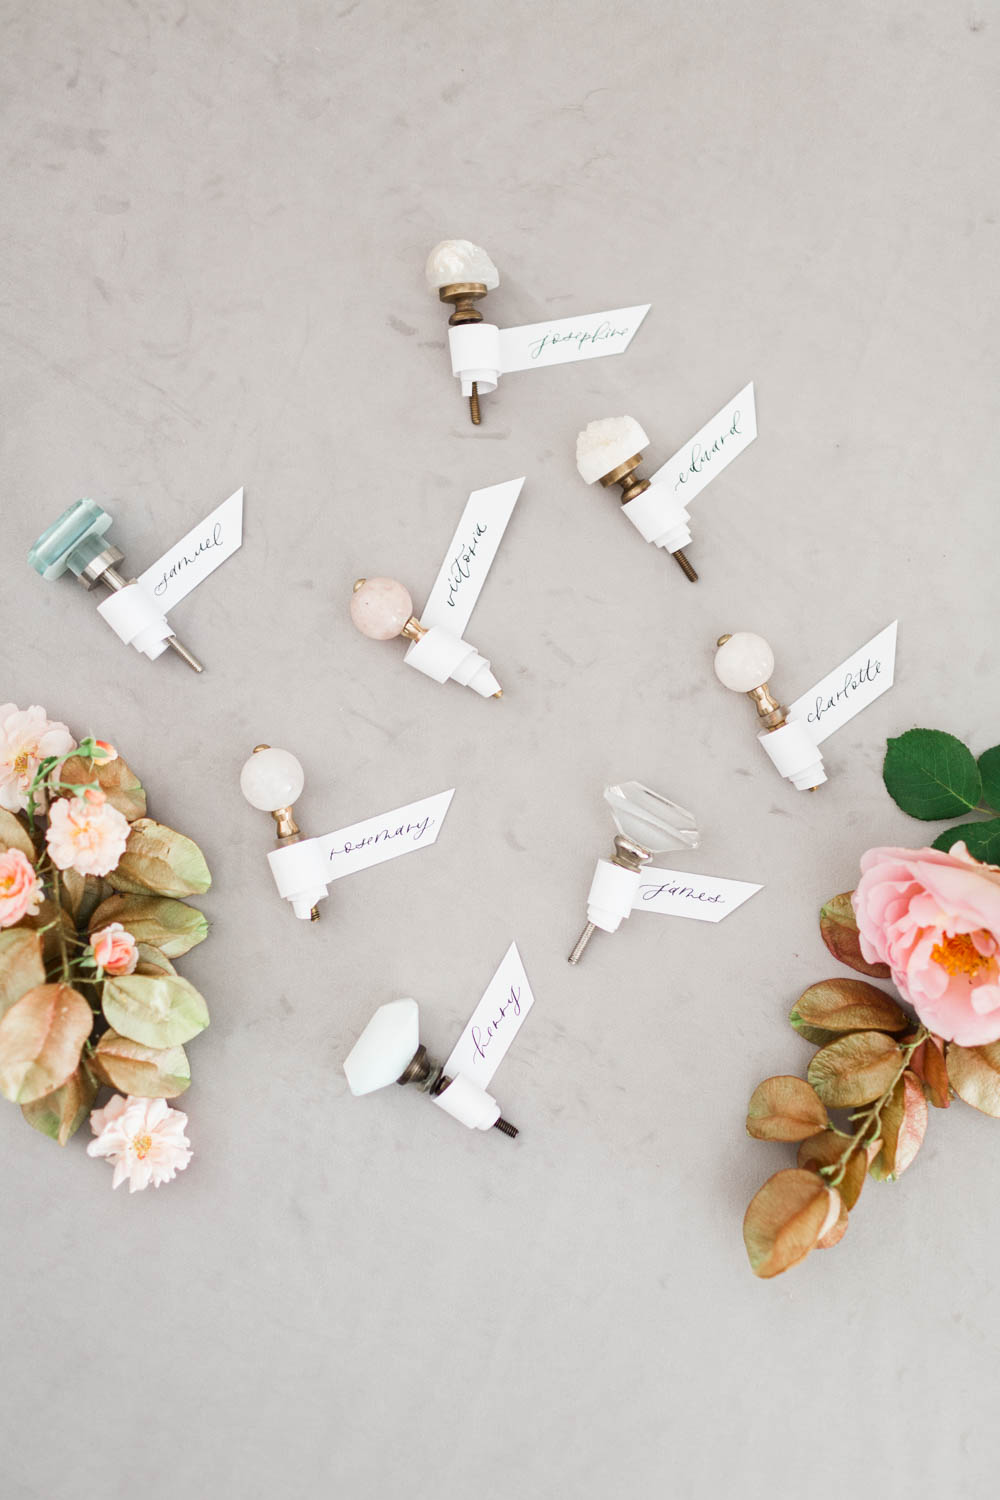 Escort cards made to look like perfume bottles with calligraphy scrolls wrapped around door knobs, Cavin Elizabeth Photography and Amorology